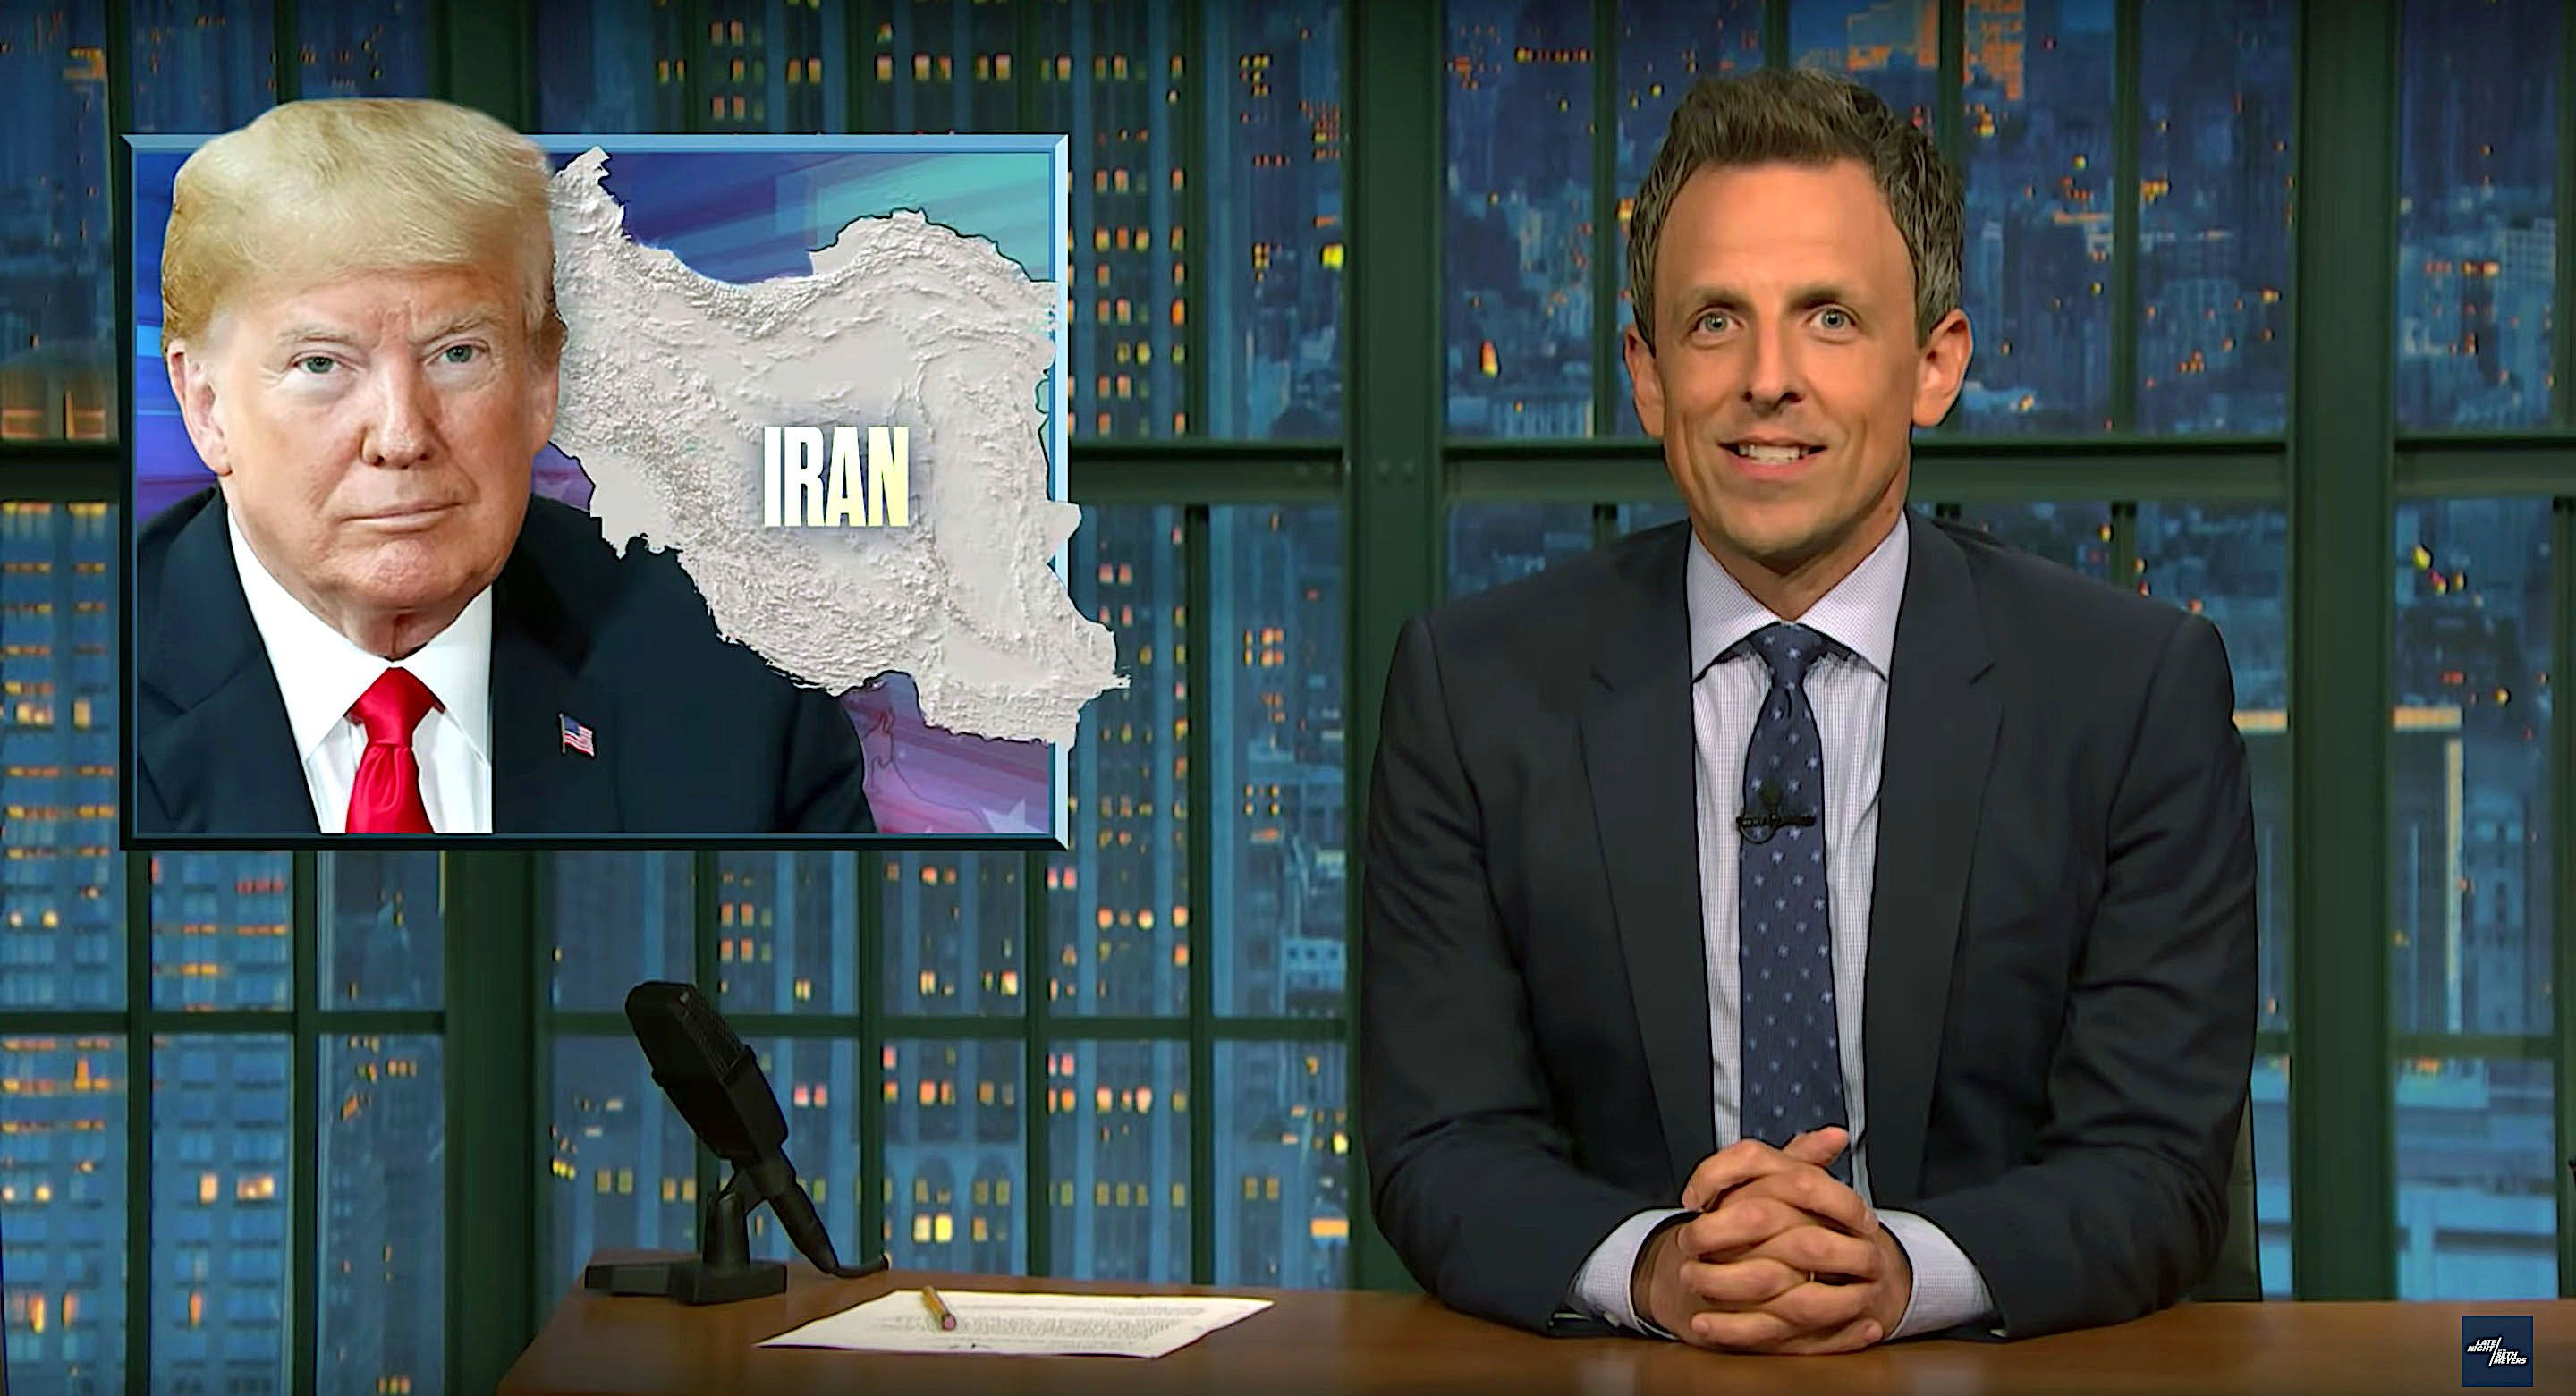 Late Night host Seth Meyers weighs in on President Donald Trumps tweet about Iran